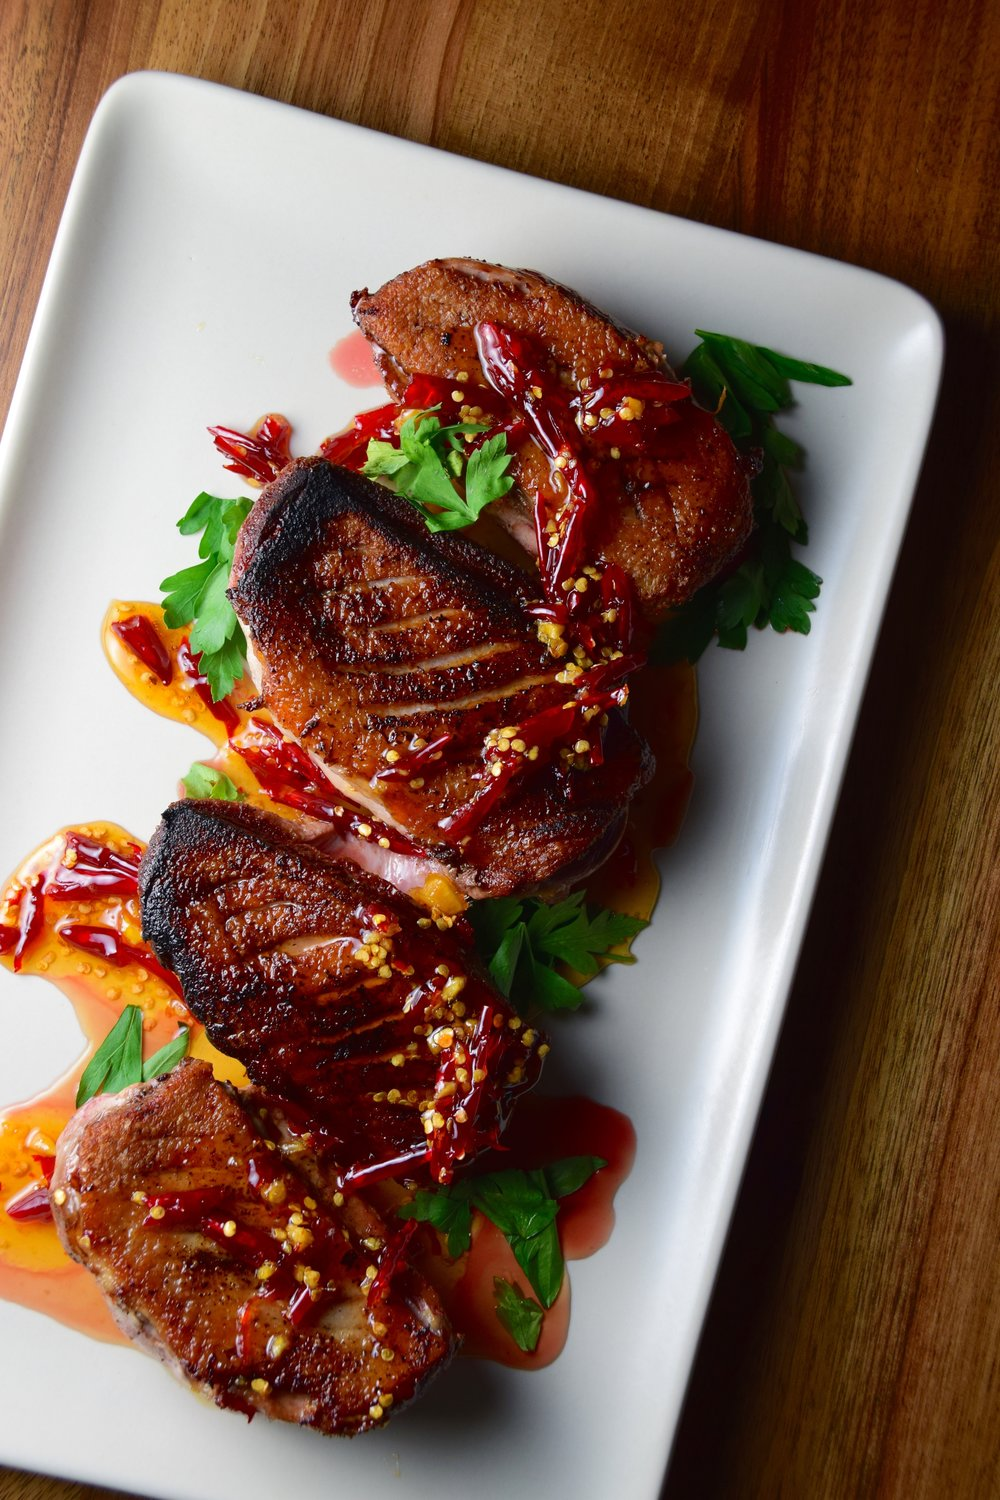 chile jam + crispy duck breast.